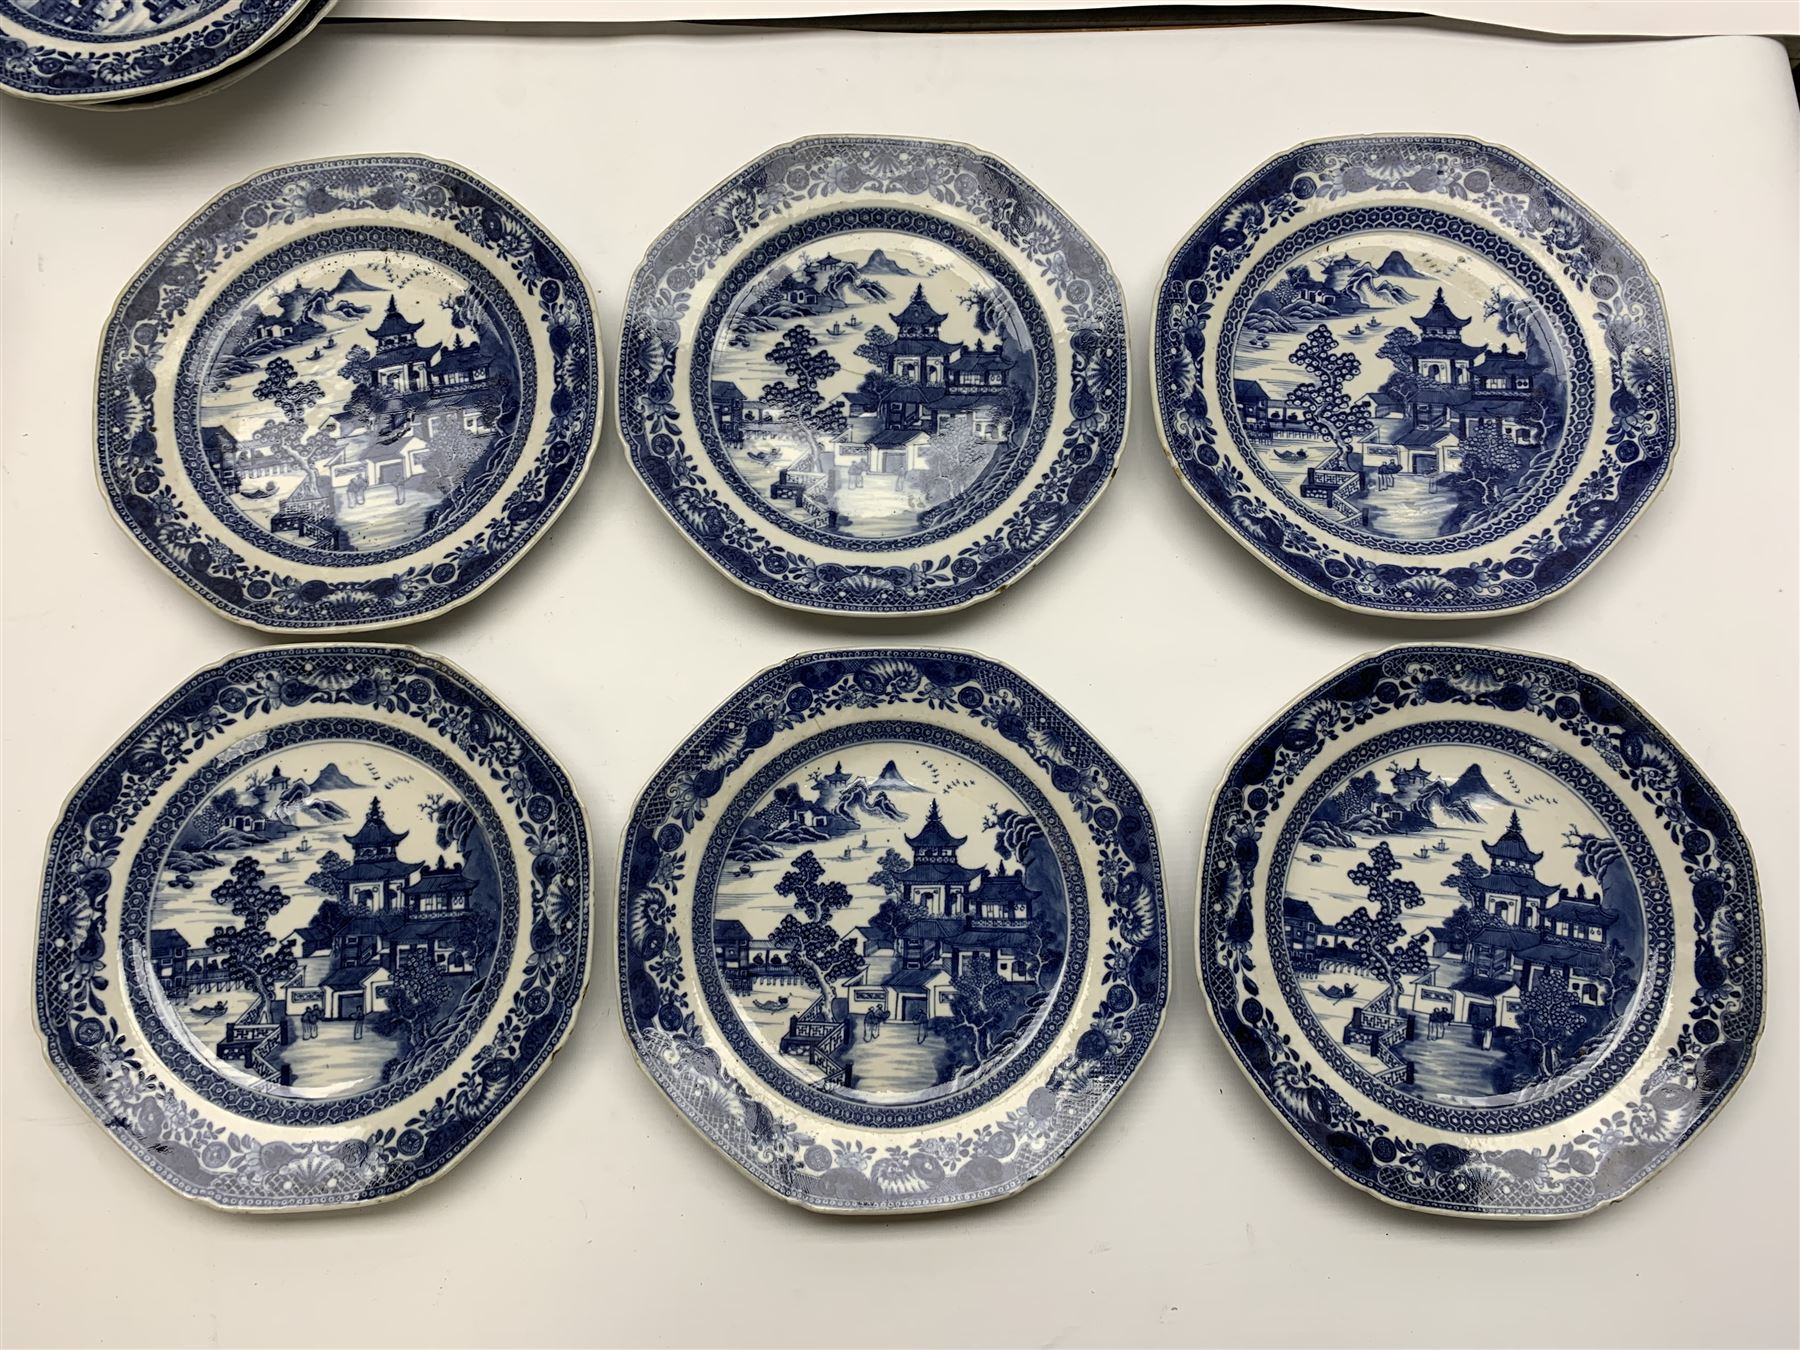 Late 18th/early 19th century Chinese export blue and white forty seven piece part dinner service - Image 17 of 20